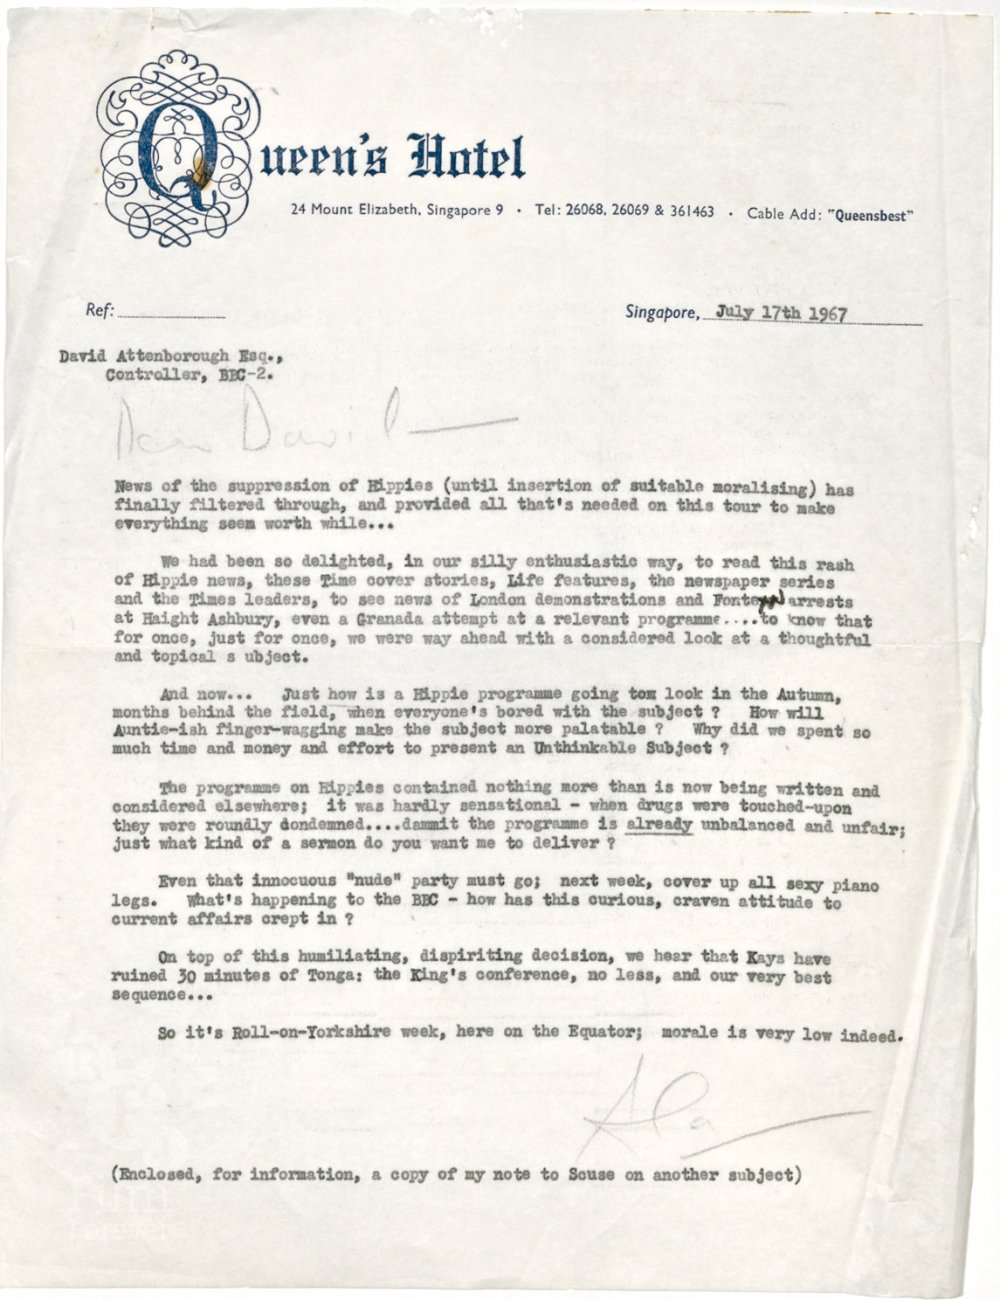 Letter From Alan Whicker To Bbc, 7 July 1967